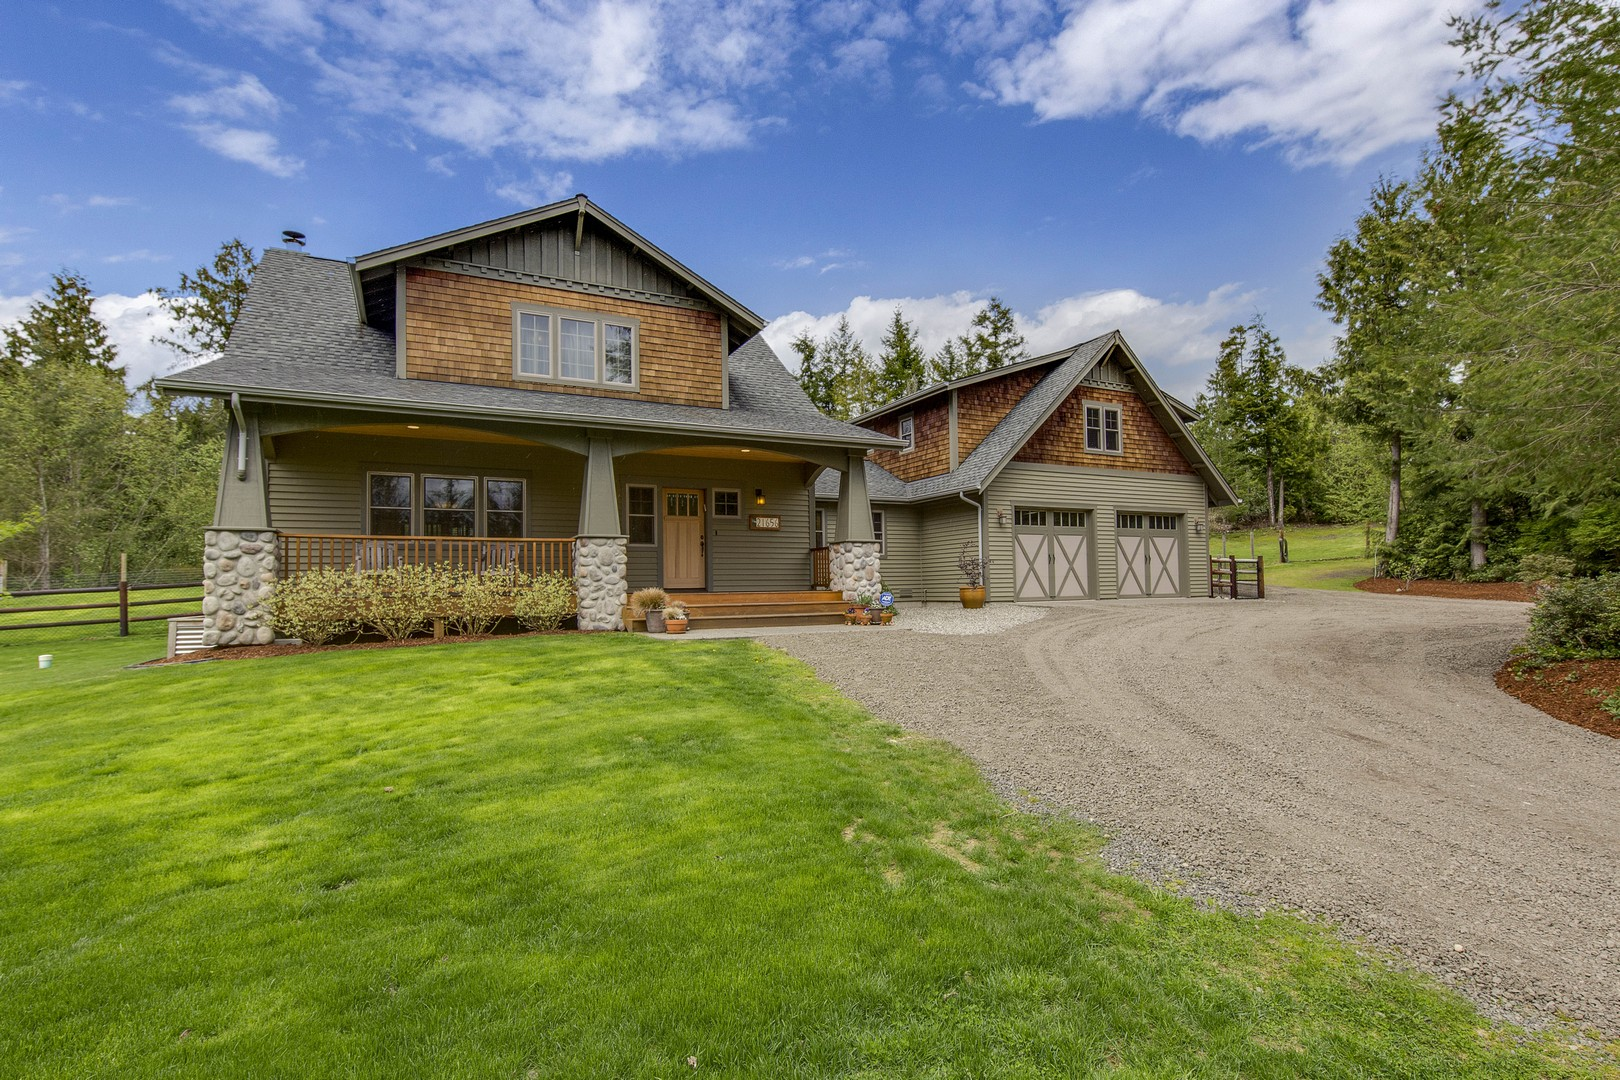 Single Family Home for Sale at Craftsman Farm Charm 21656 Big Valley Rd NE Poulsbo, Washington 98370 United States